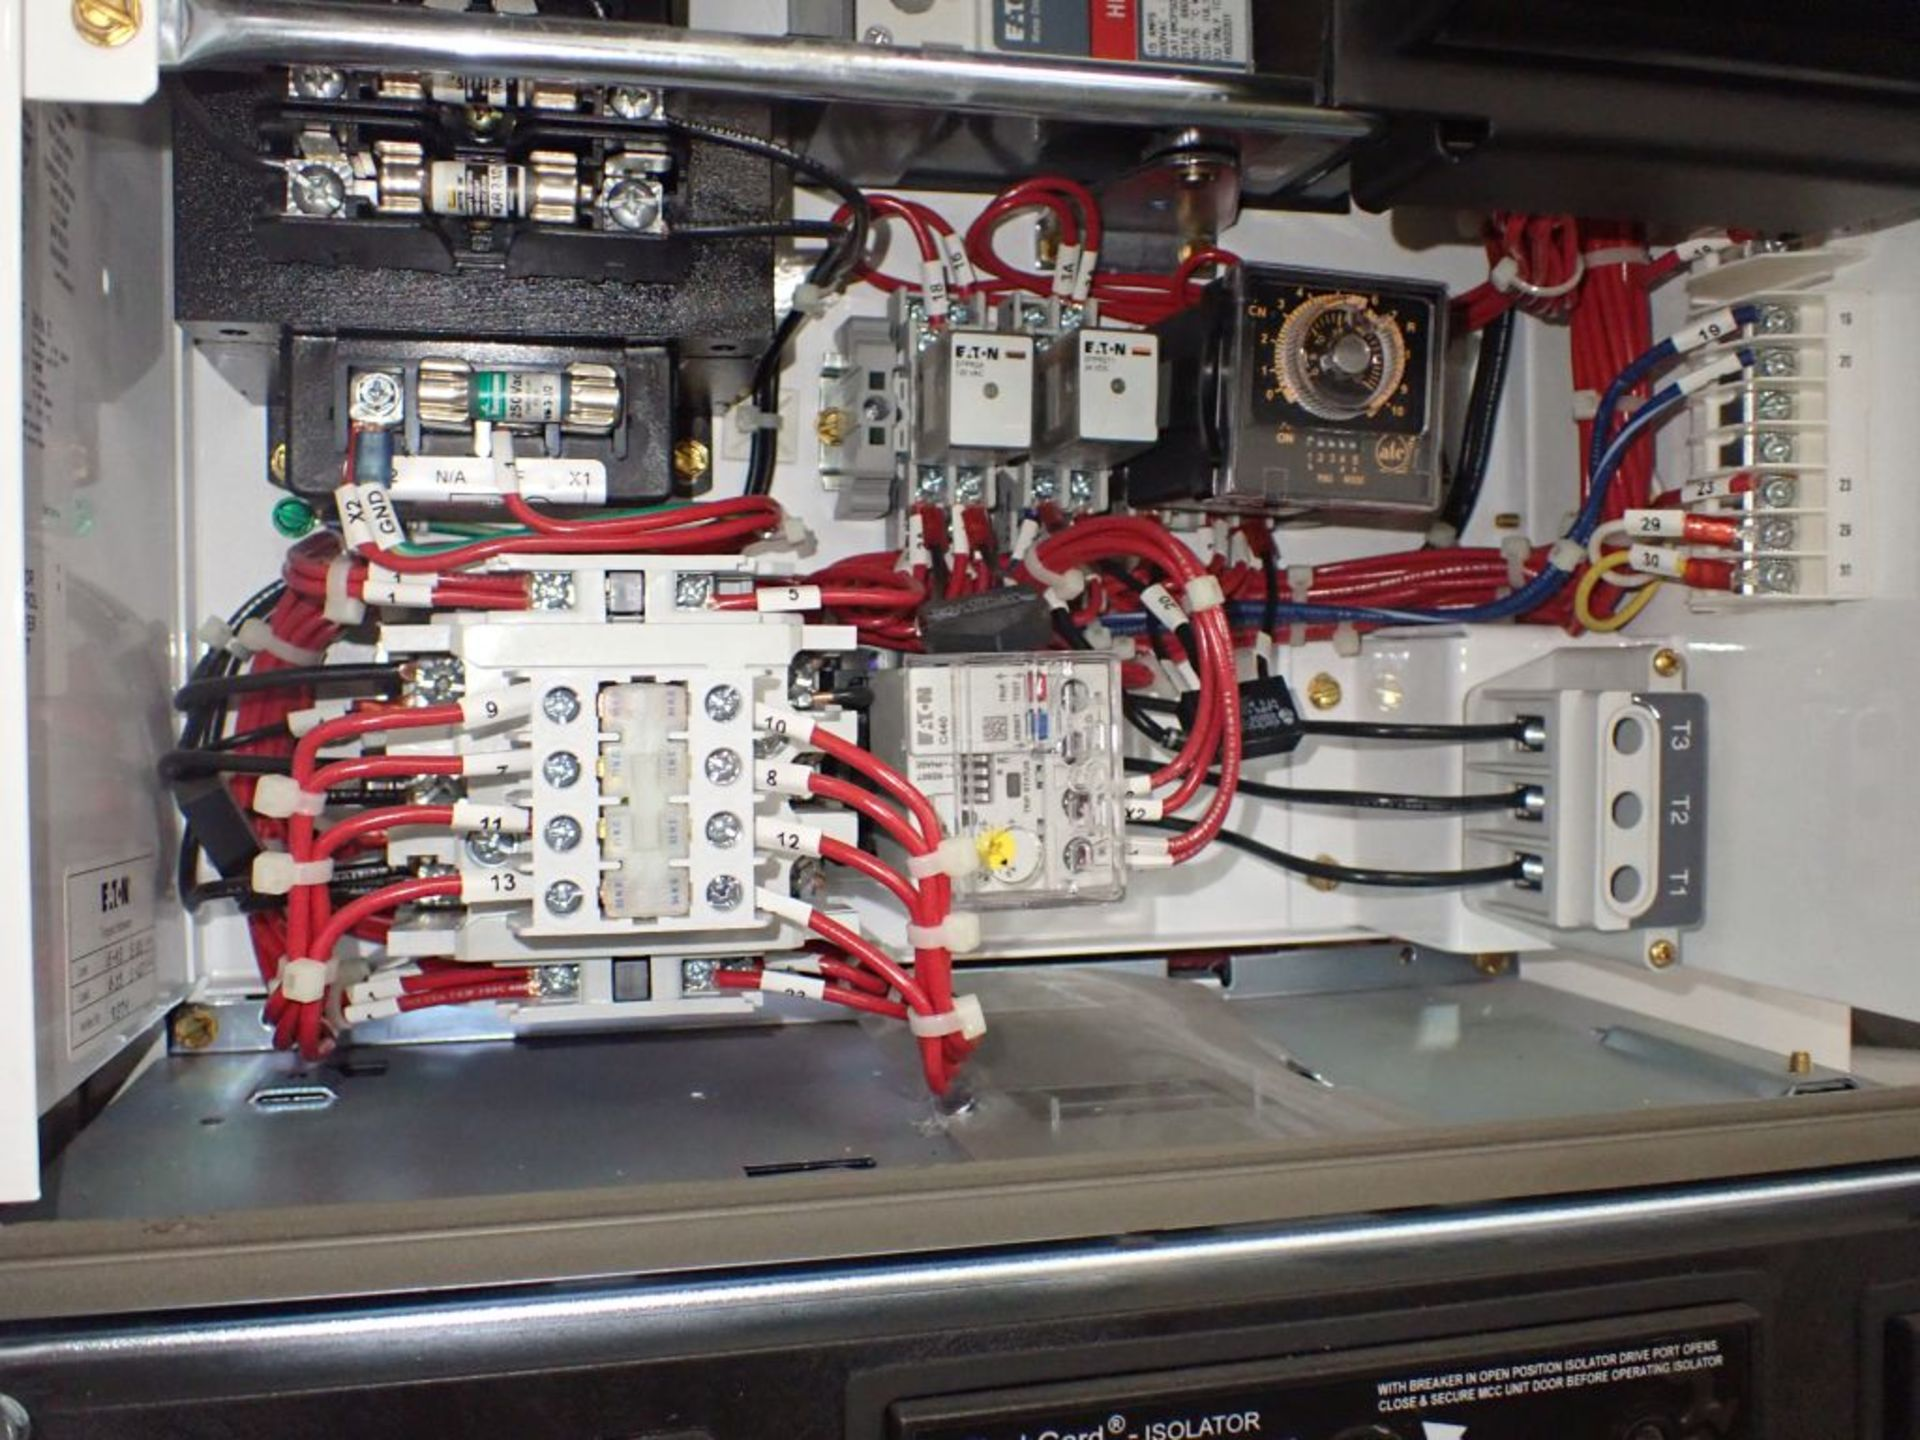 Eaton Freedom 2100 Series Motor Control Center   (2) F206-15A-10HP; (2) SVX900-50A, with Eaton AF - Image 32 of 48